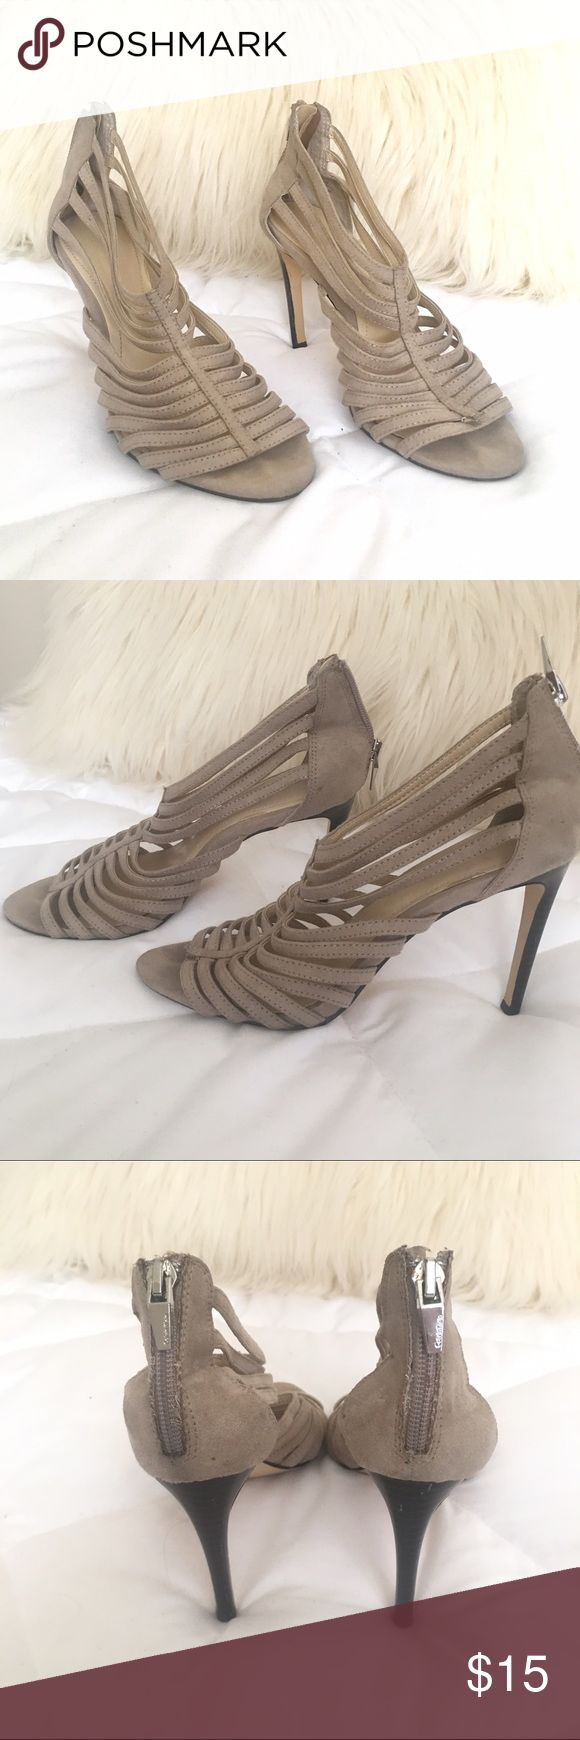 Calvin Klein strappy heels ✨ Calvin Klein strappy heels in the color beige ✨ shoe size is 6.5 in women's. Material is suede. These shoes have been worn and pre-loved! Price reflex condition. Imperfections: strap on the left shoe has come undone (shown in last photo) Calvin Klein Shoes Heels